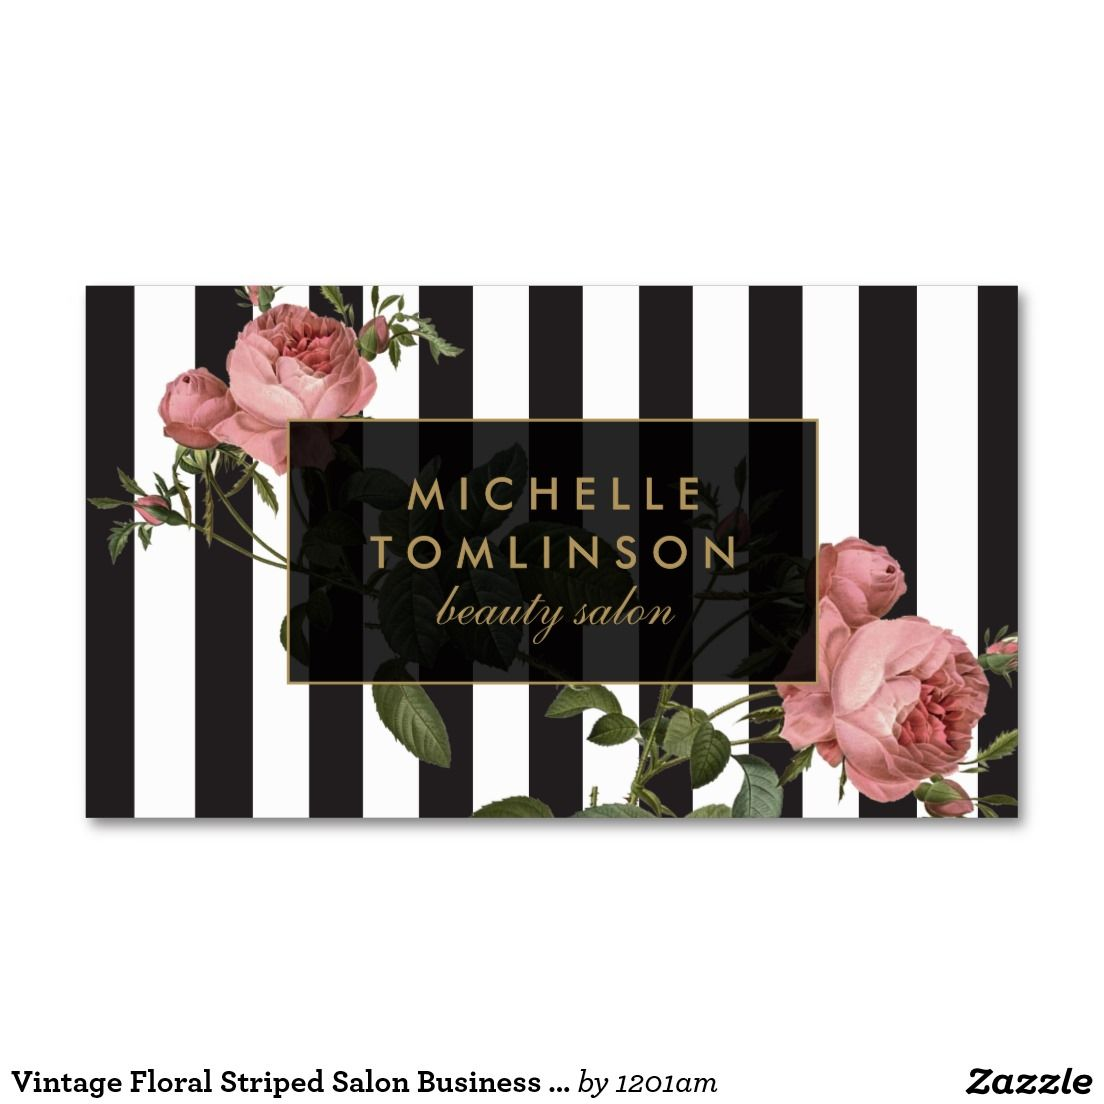 Vintage floral striped salon business card pack of standard vintage floral striped salon business card pack of standard business cards reheart Image collections